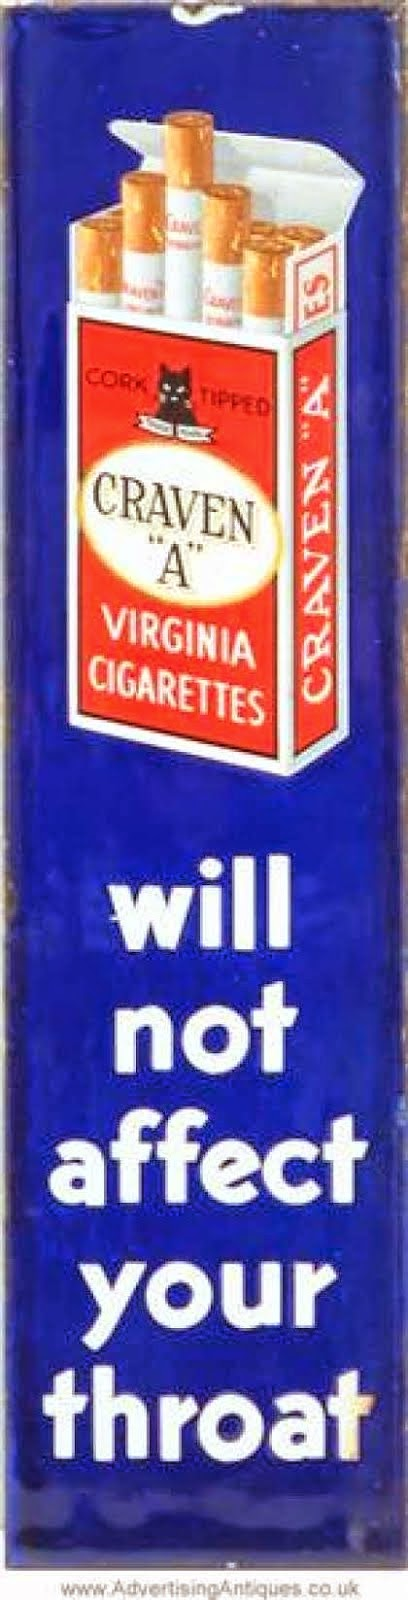 American Spirit cigarettes blue vs yellow